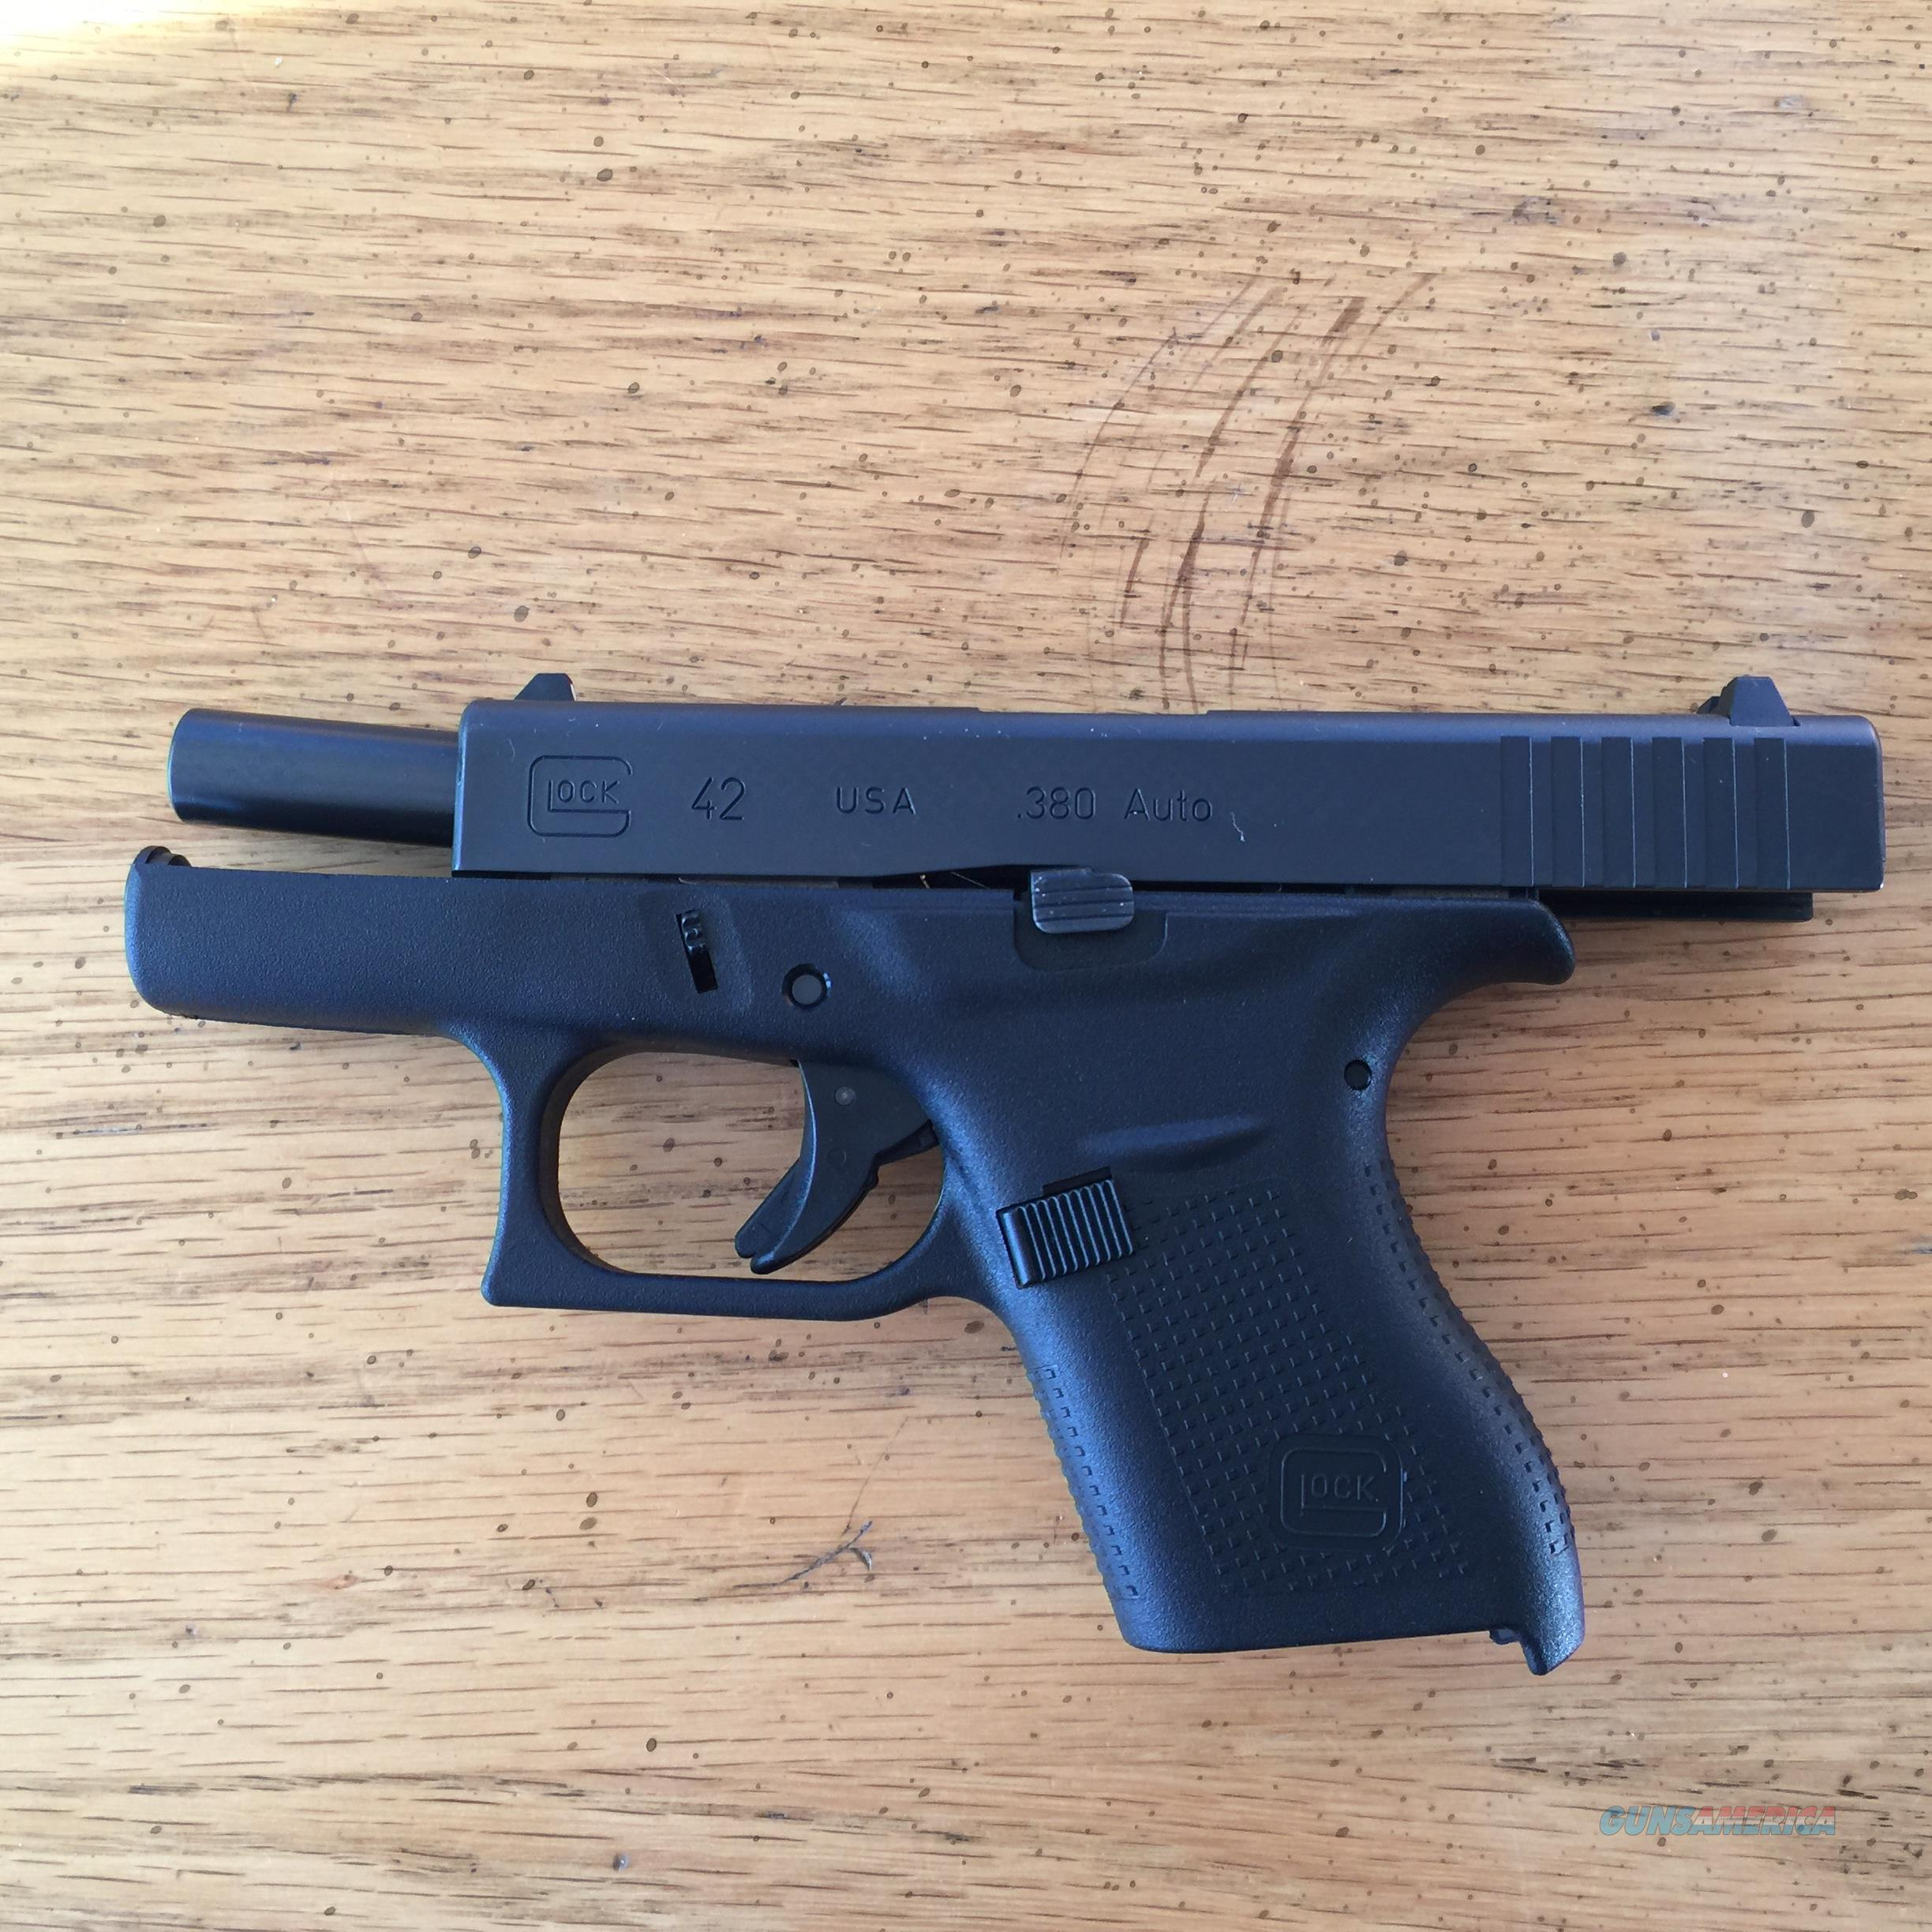 Glock 42 in Like New Condition Working Perfectly Just Cleaned  Guns > Pistols > Glock Pistols > 42